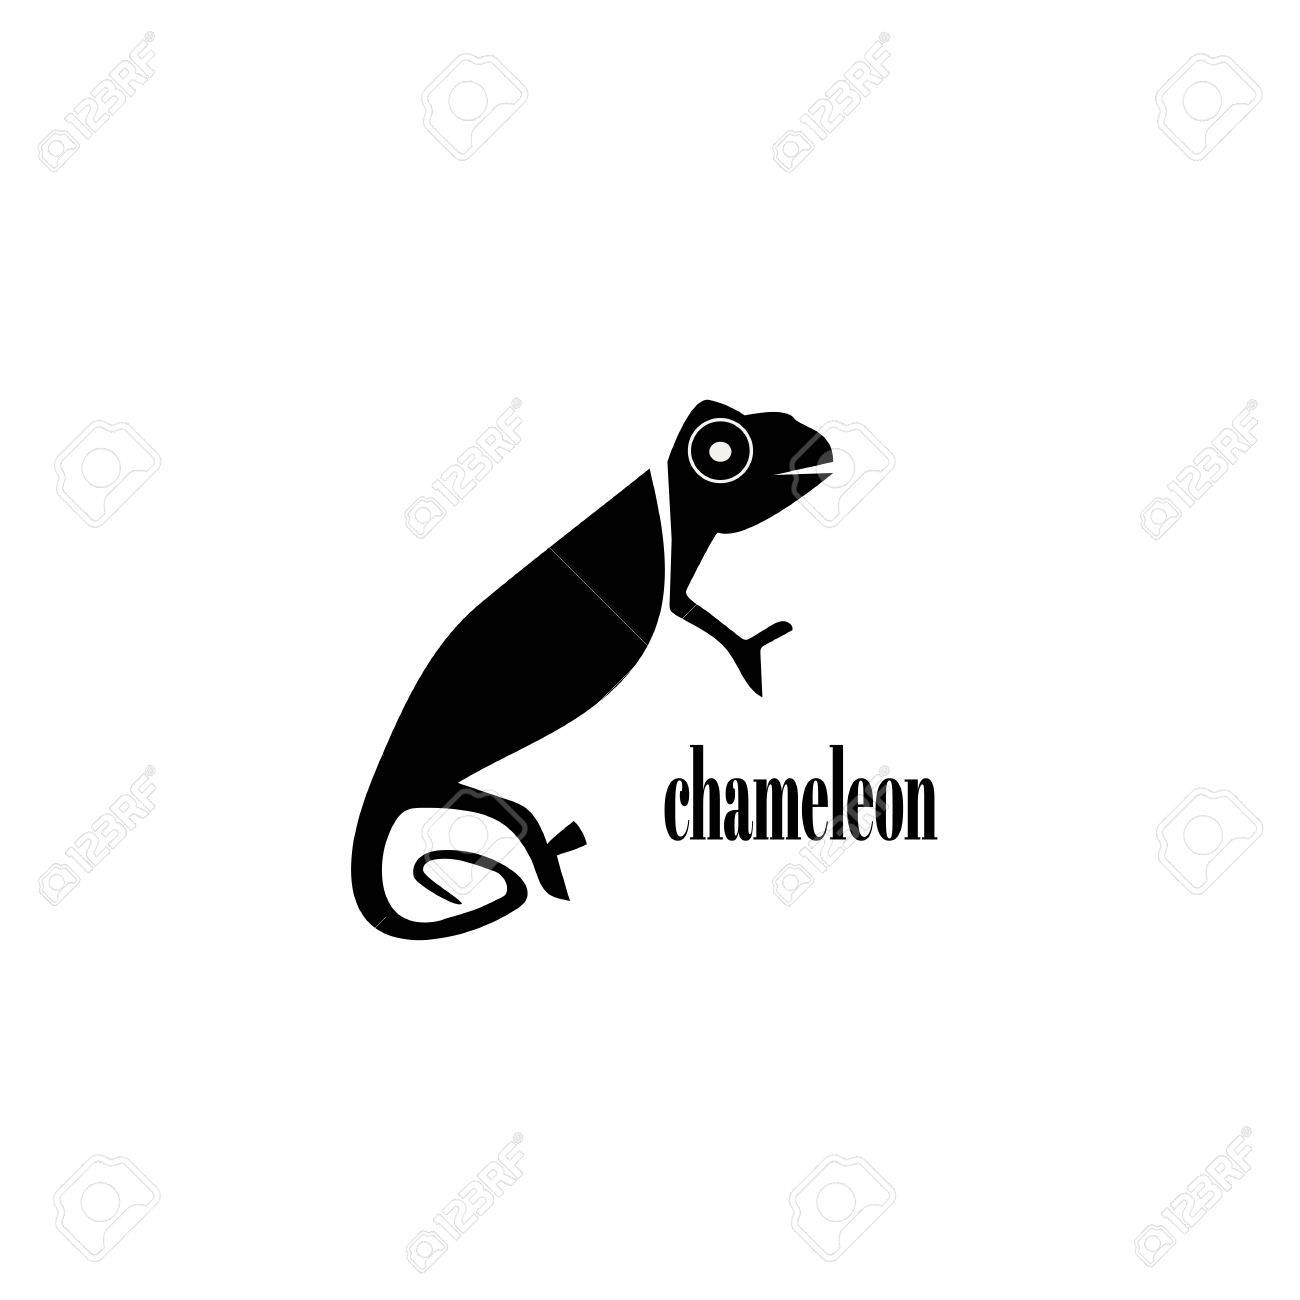 Chameleon Logo Design Template For Your Company Vector